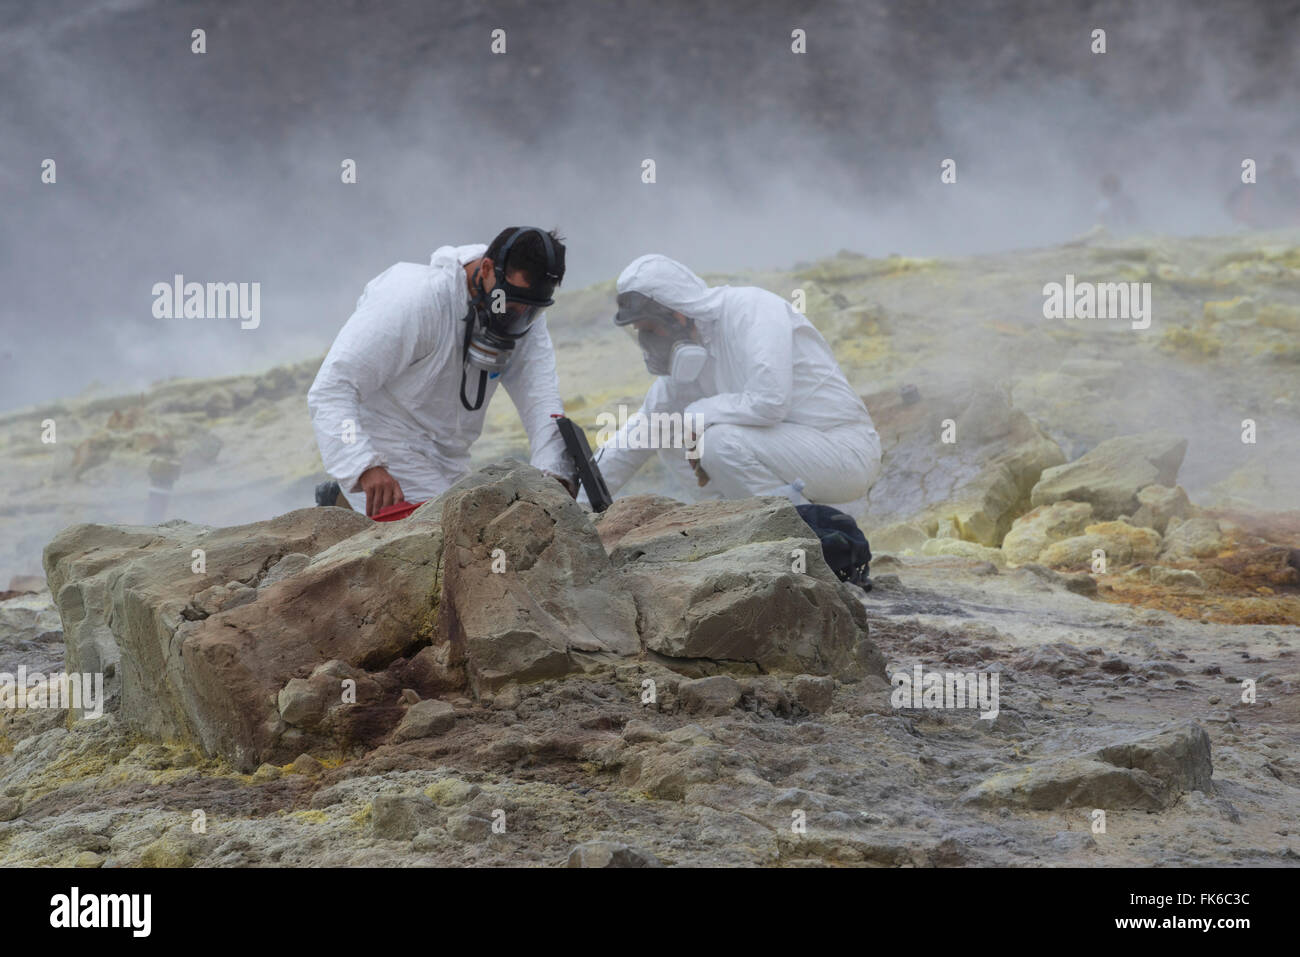 Geologists taking mineral samples on Gran Cratere, Vulcano Island, Aeolian Islands, UNESCO, Sicily, Italy - Stock Image